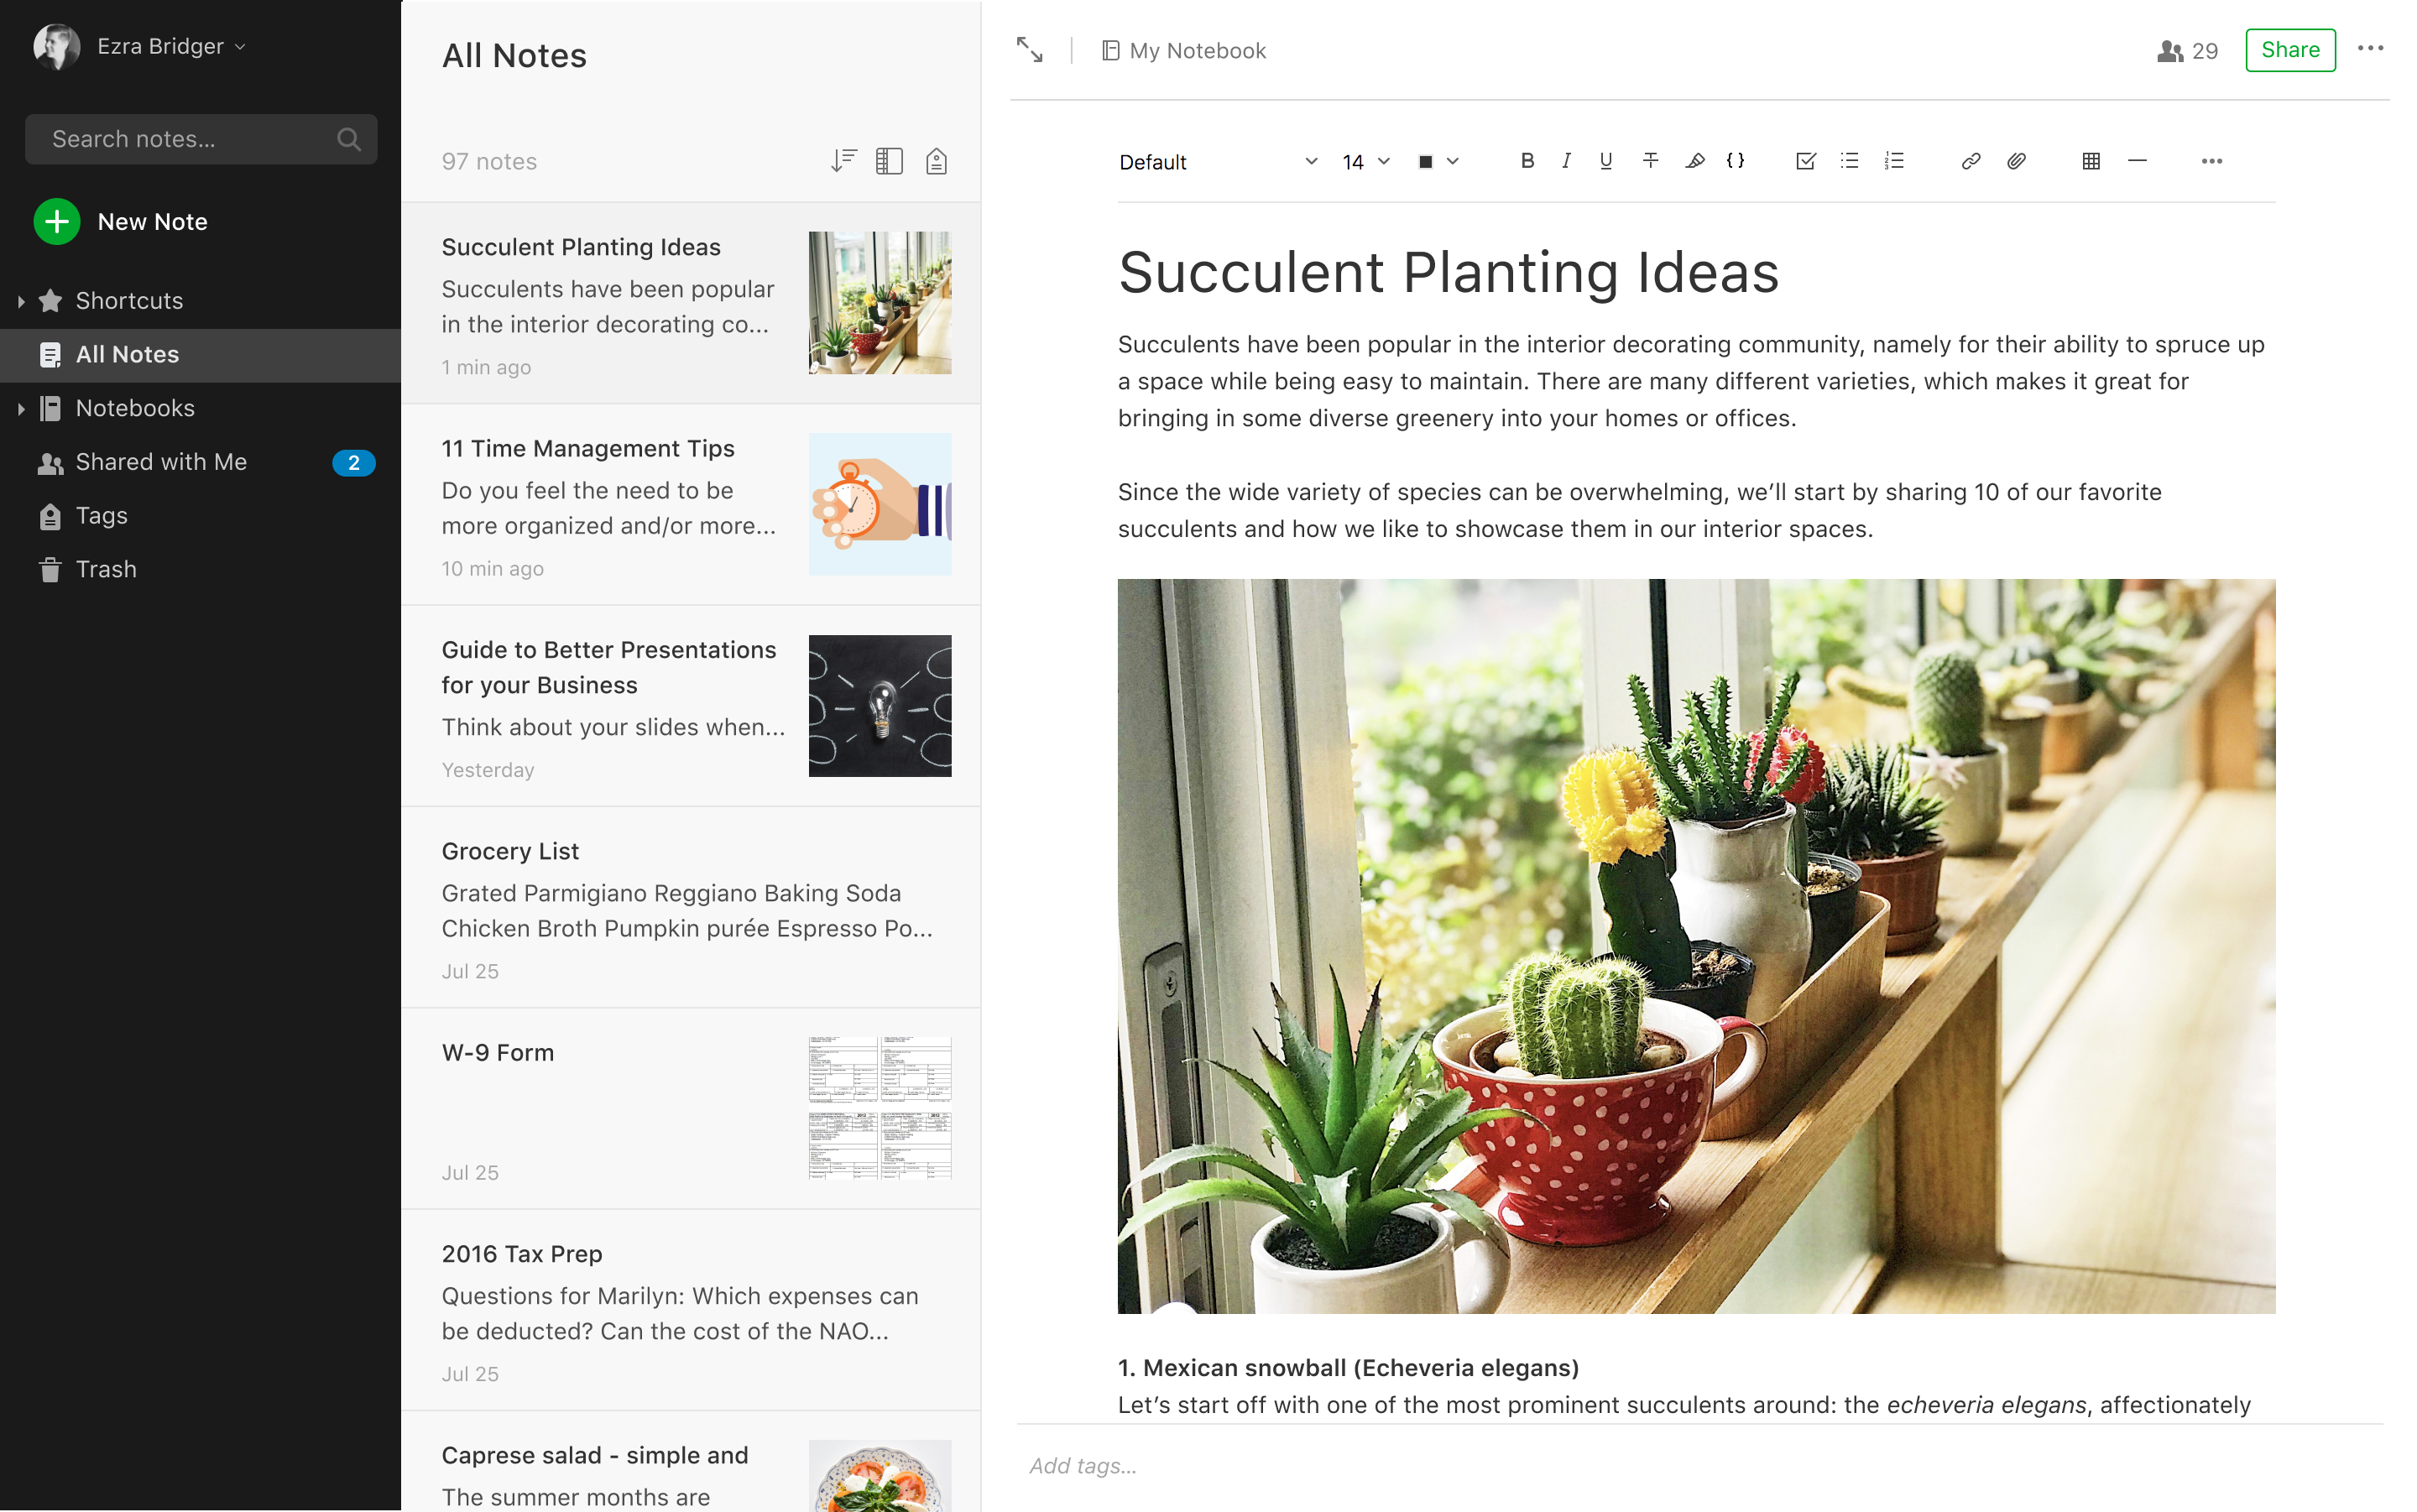 guest post on evernote evernote. com